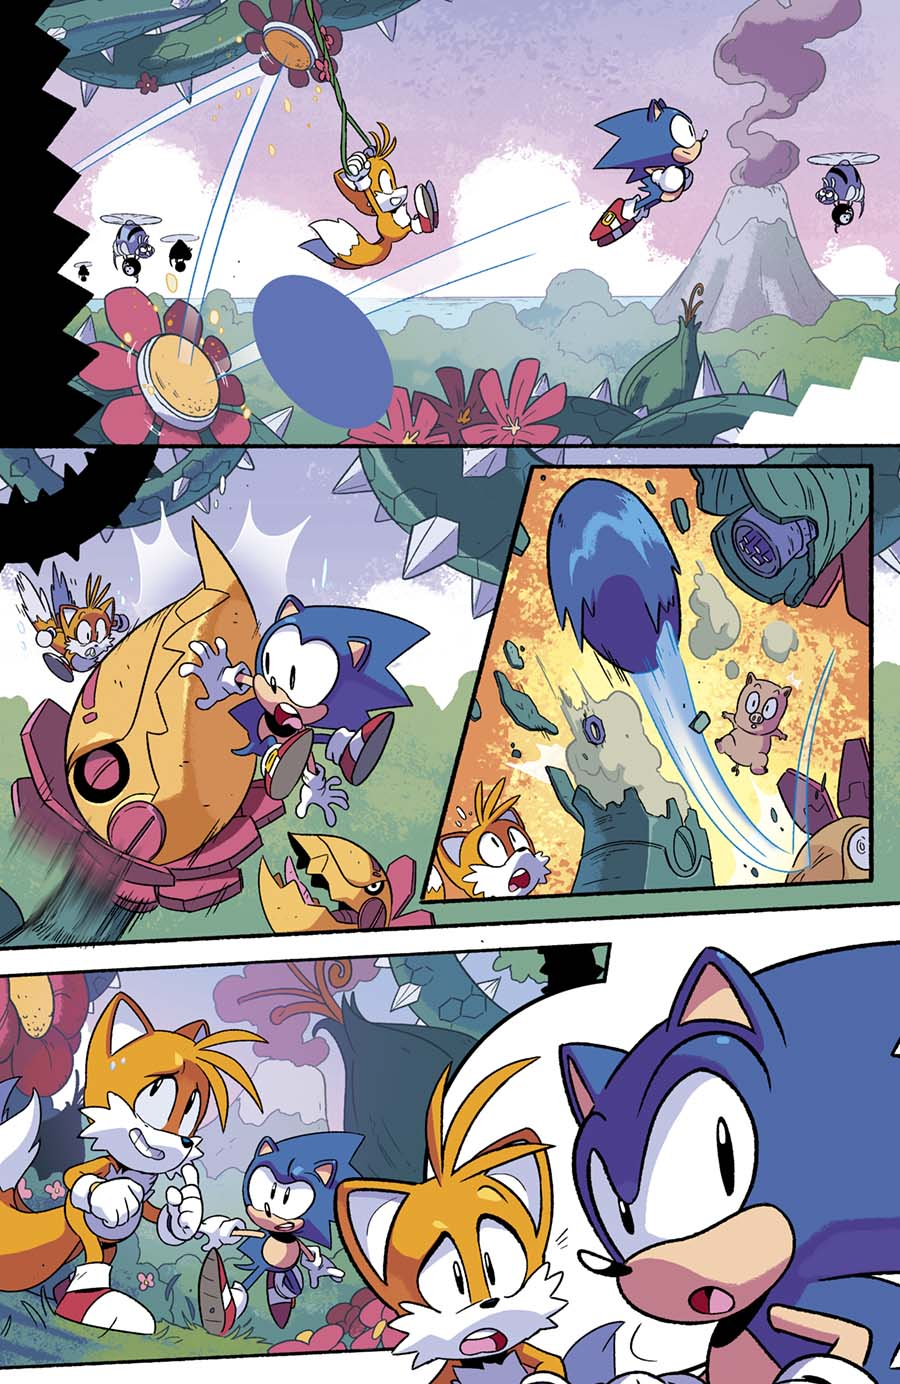 archie comic s sonic mega drive sequel issue announced titled